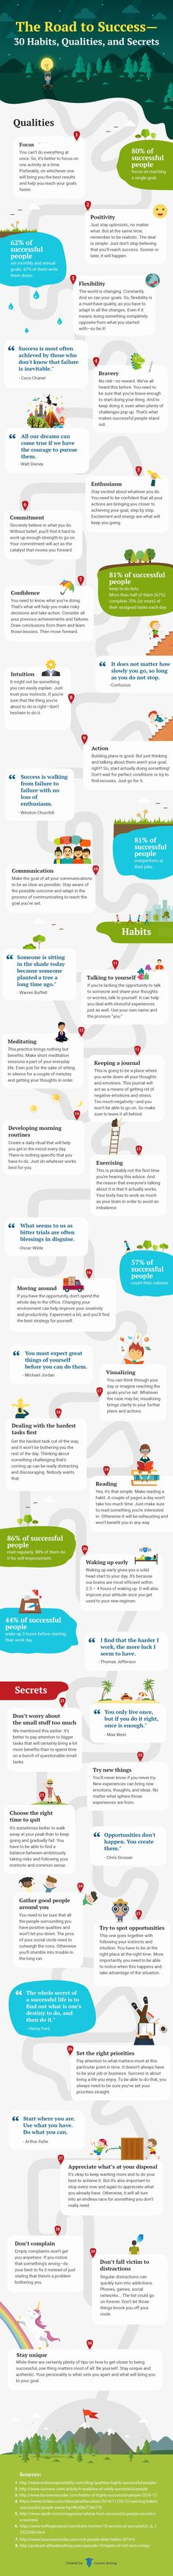 What Are 30 Habits, Qualities and Secrets On The Road To Success?#infographic